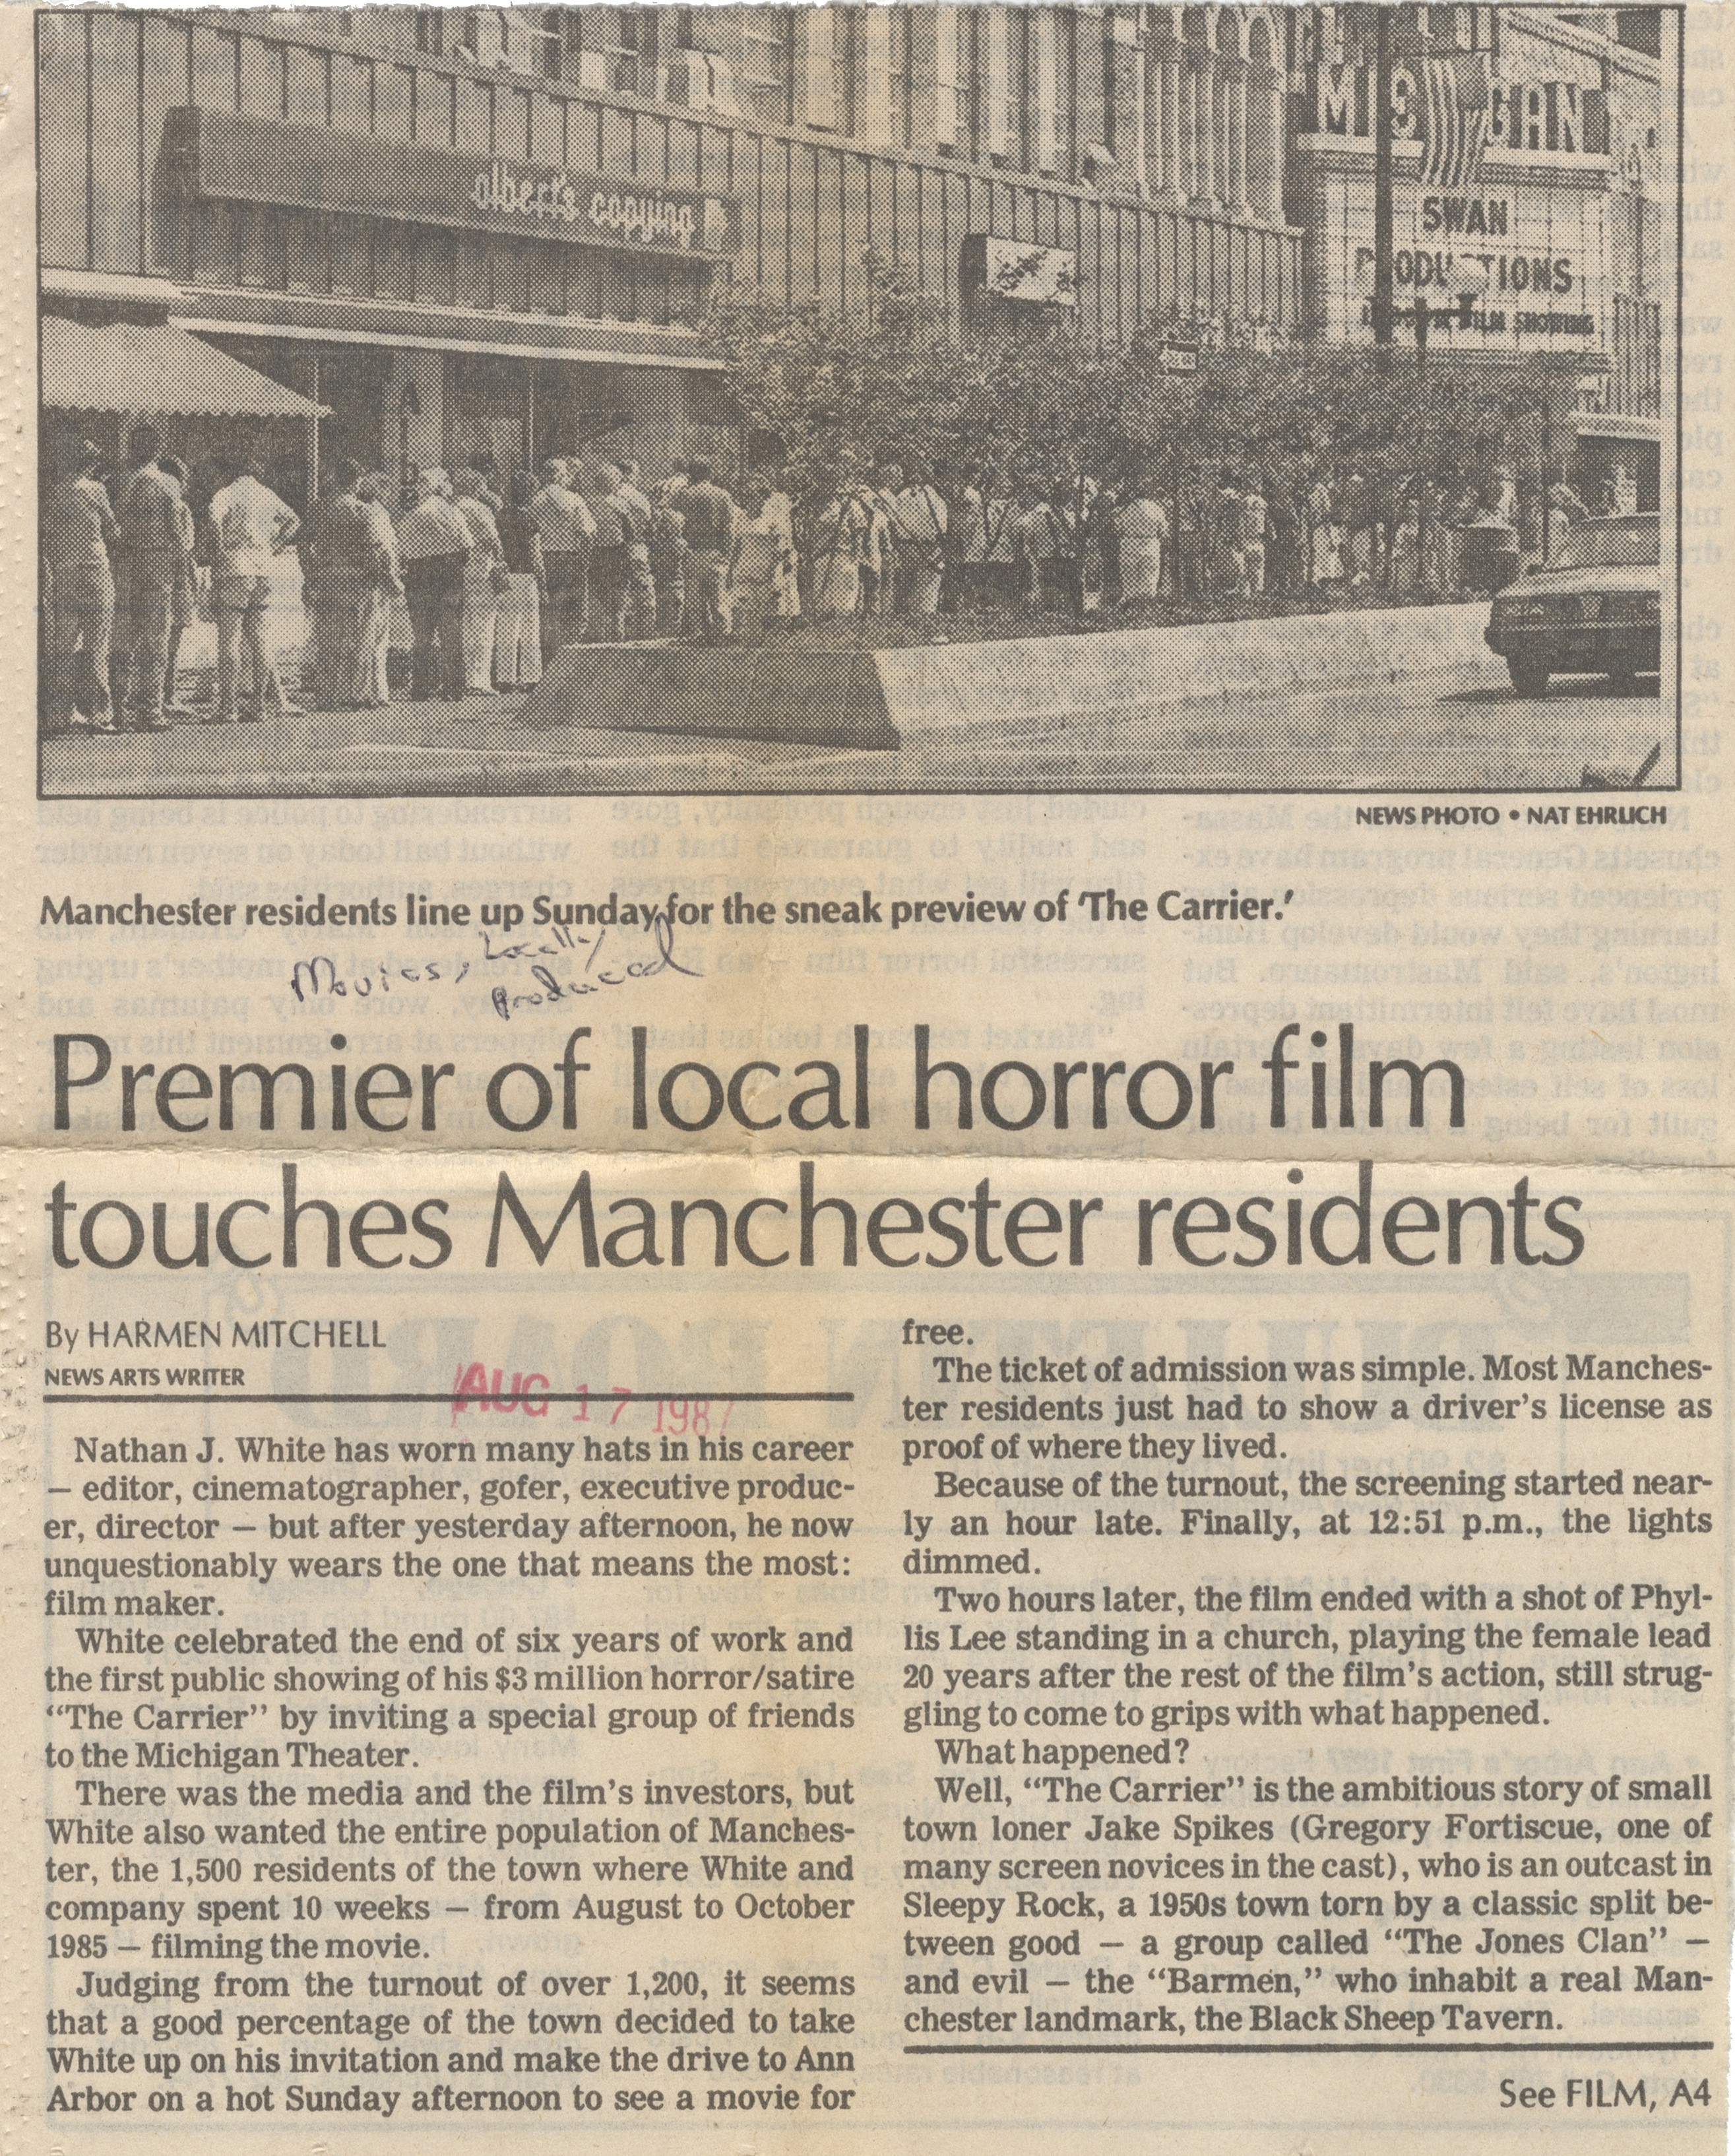 Premiere of Local Horror Film Touches Manchester Residents image